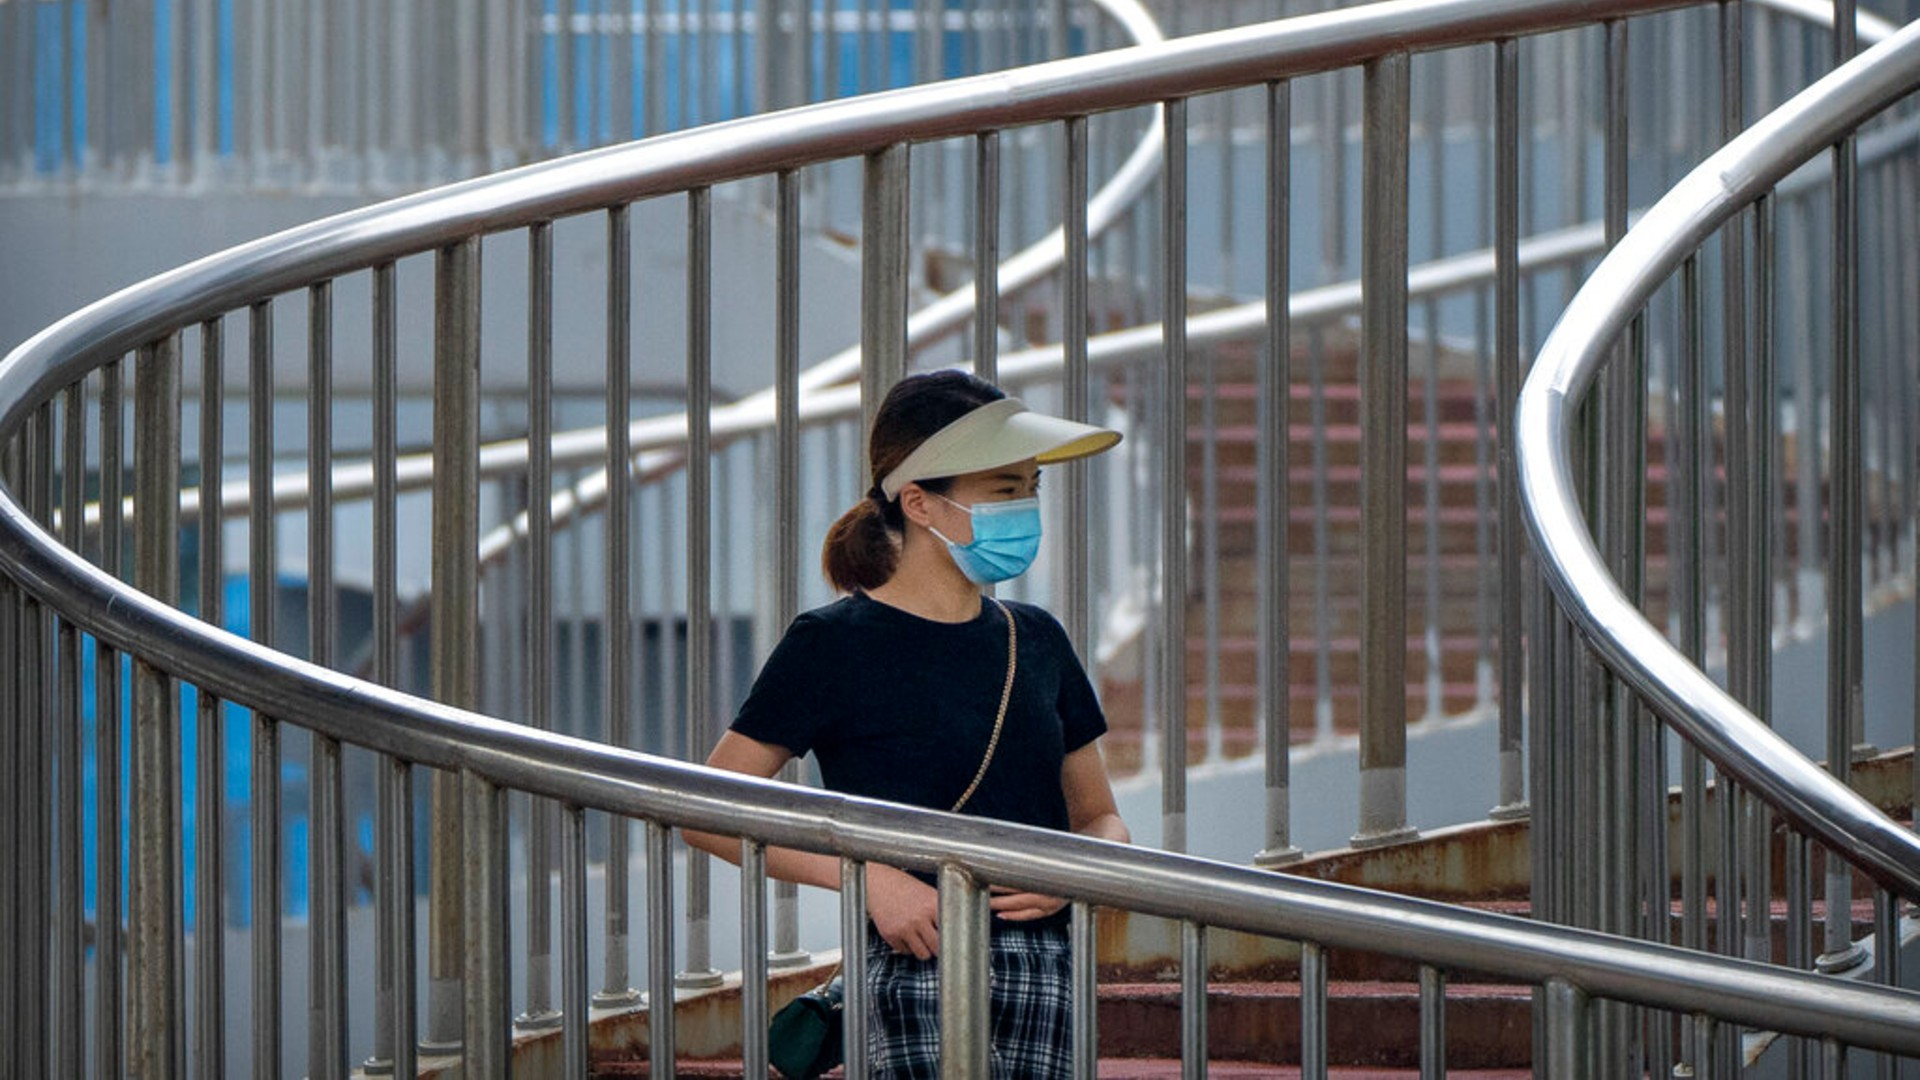 A woman wearing a face mask to protect against COVID-19 walk across a pedestrian bridge during the morning rush hour in Beijing, Wednesday, Aug. 4, 2021. (AP Photo/Mark Schiefelbein)